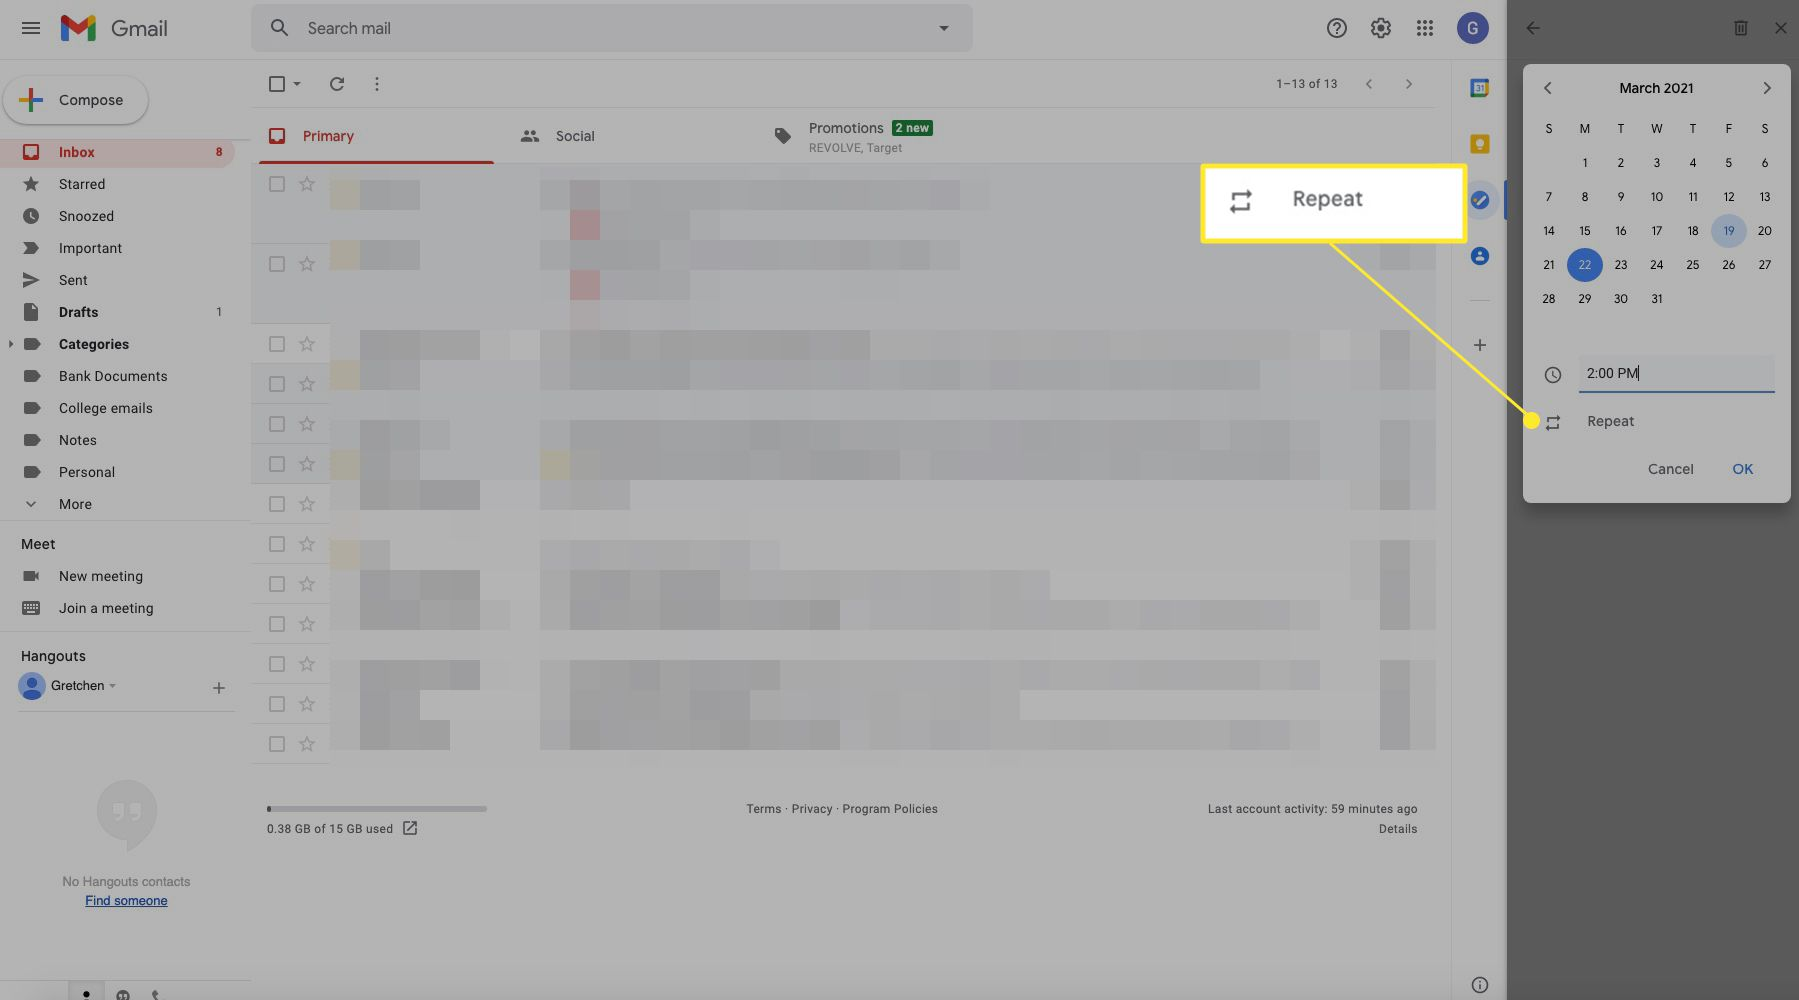 Google task screen with Repeat highlighted